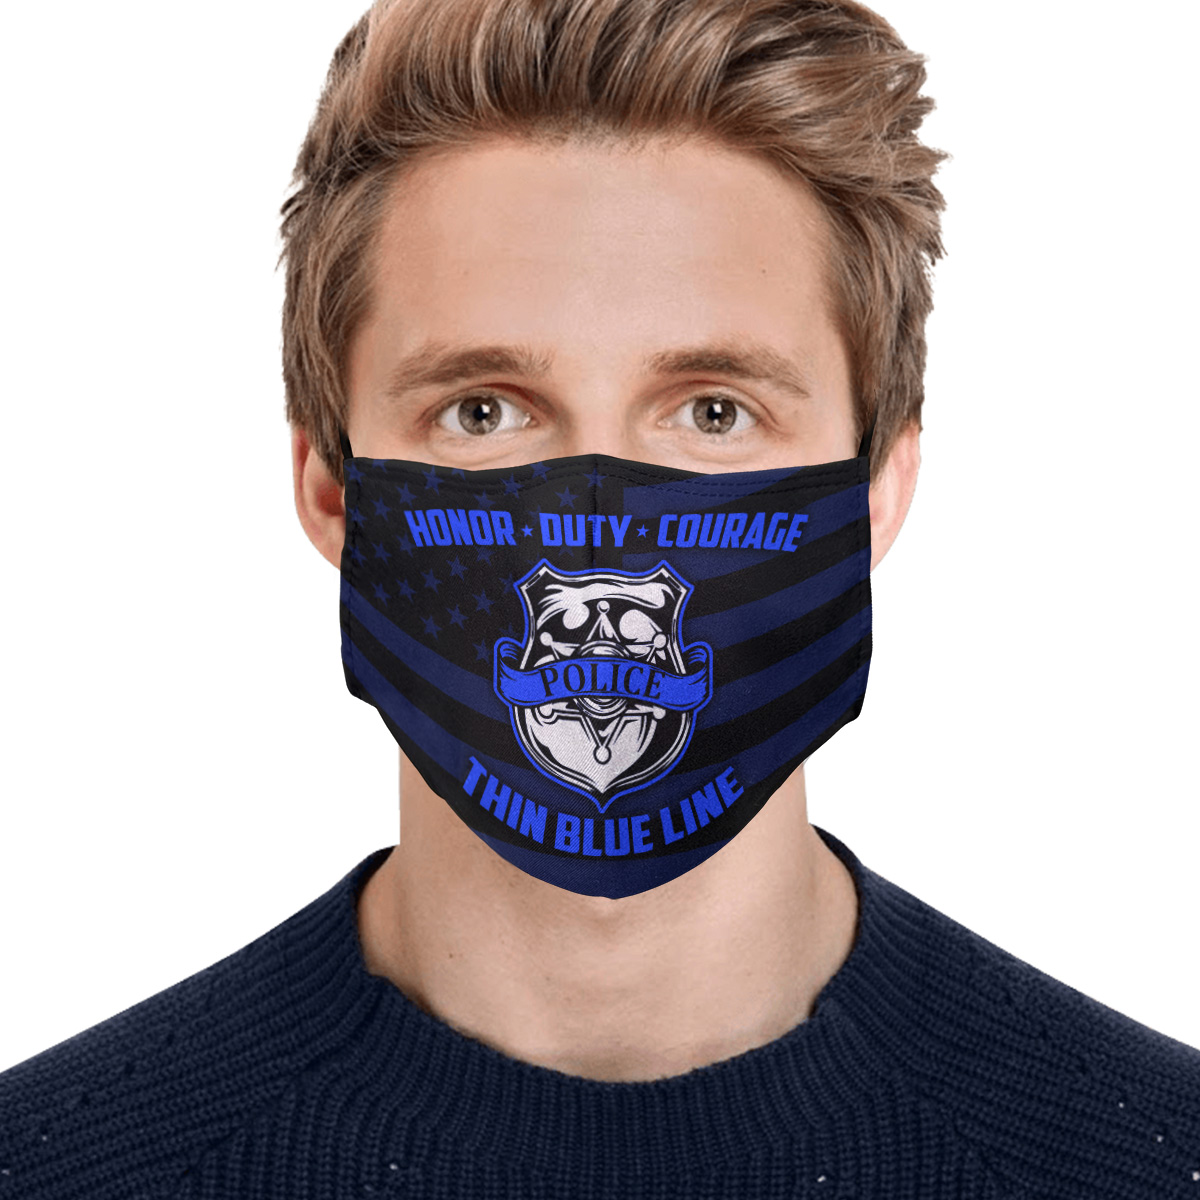 Honor duty courage police back thin blue line face mask 1